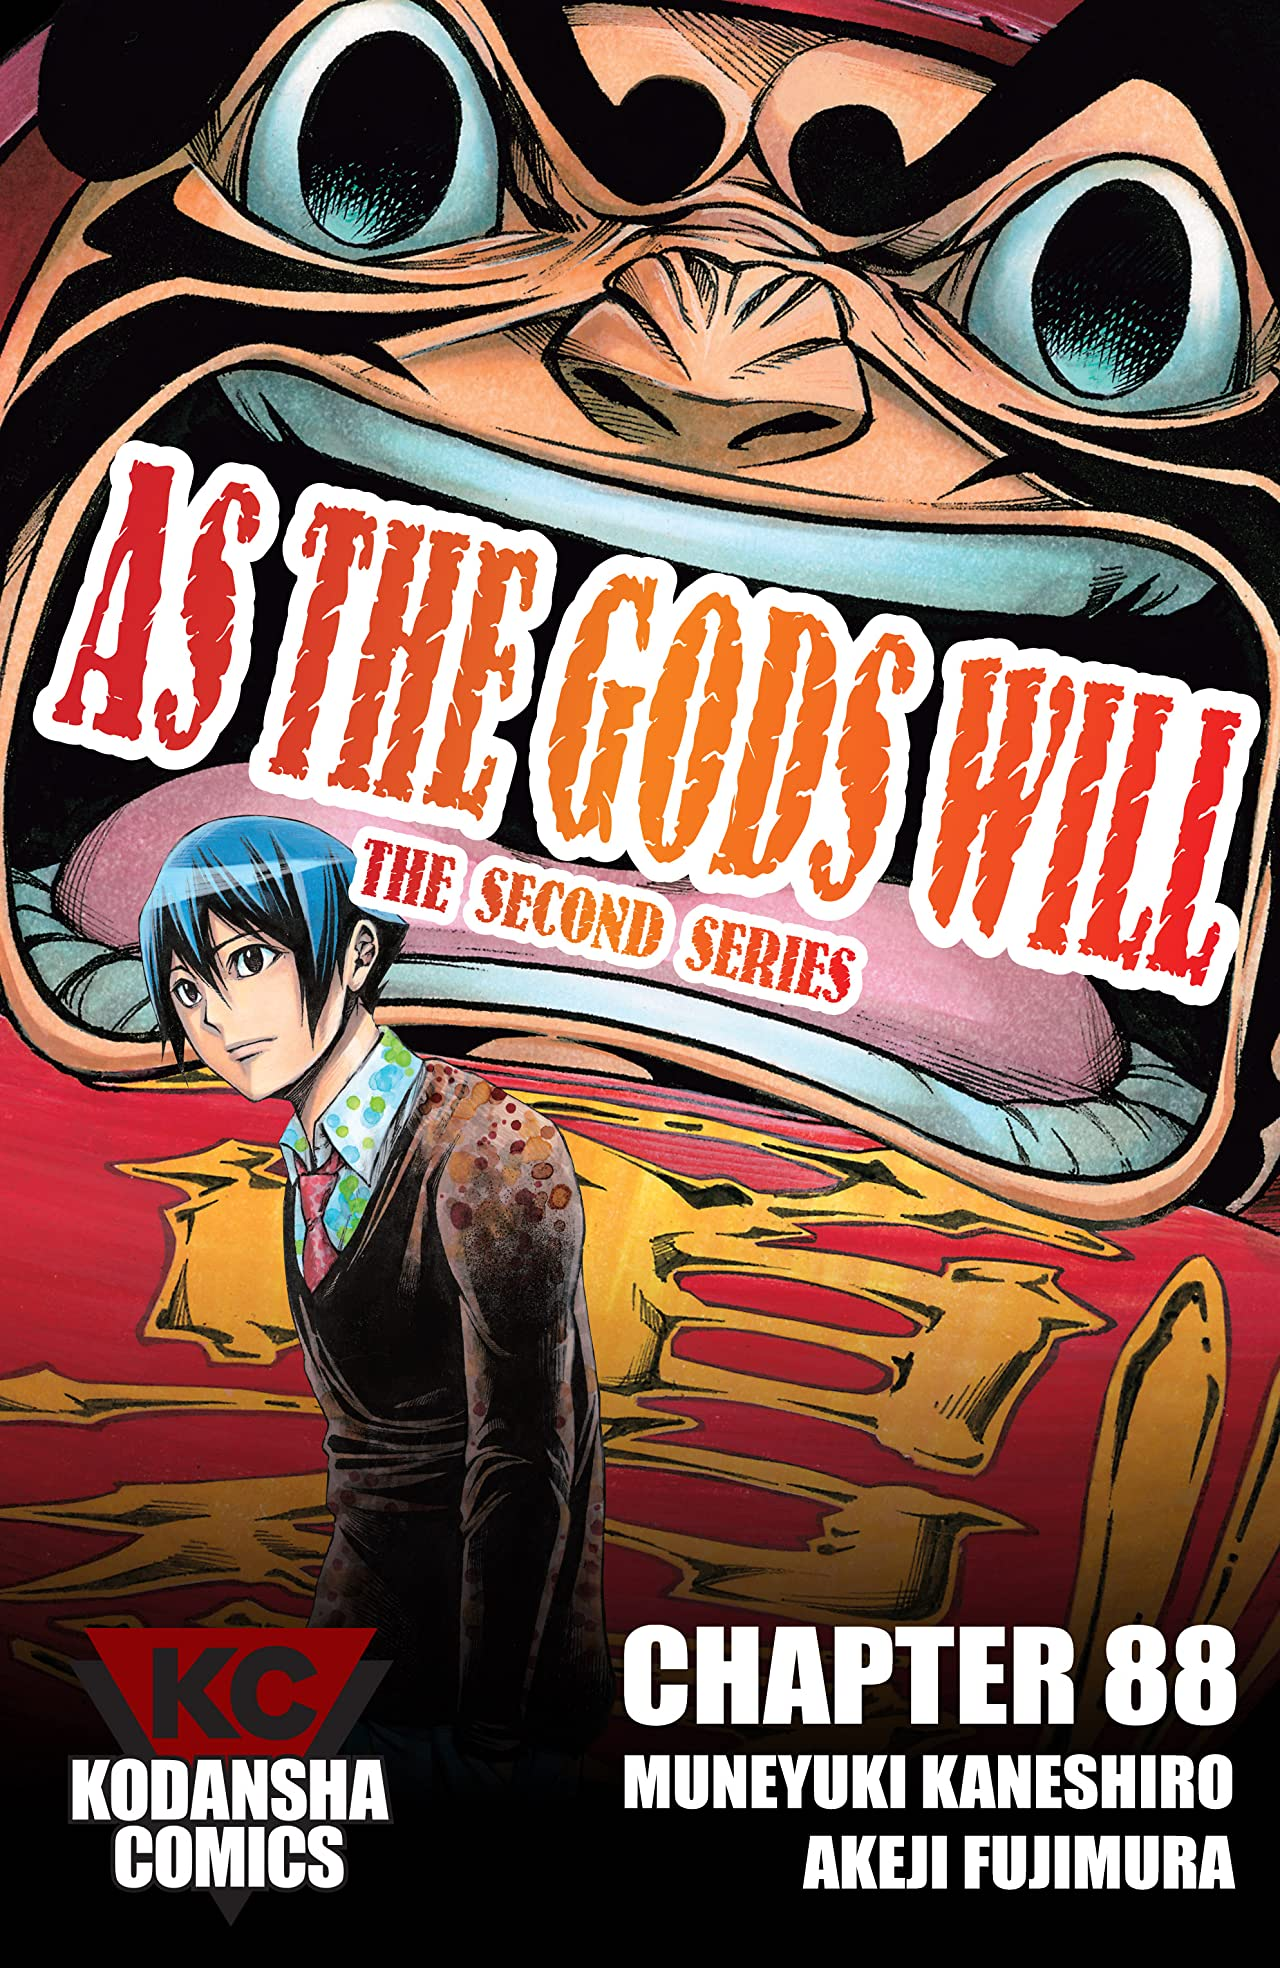 As The Gods Will: The Second Series #88